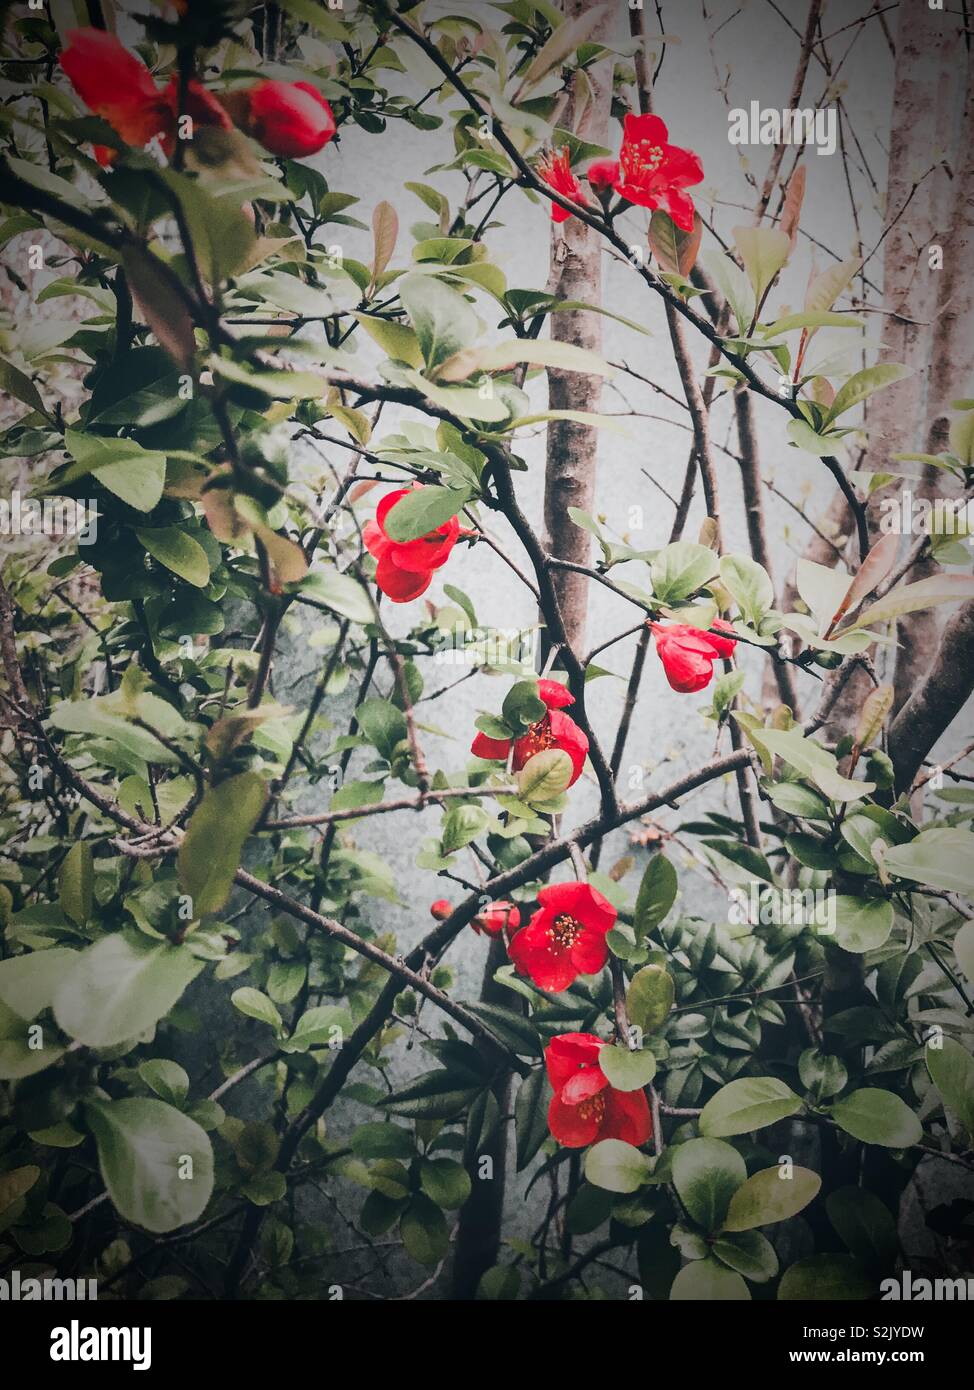 Red Hawthorne shrub blossoms and green foliage against metal shed I North Carolina spring - Stock Image